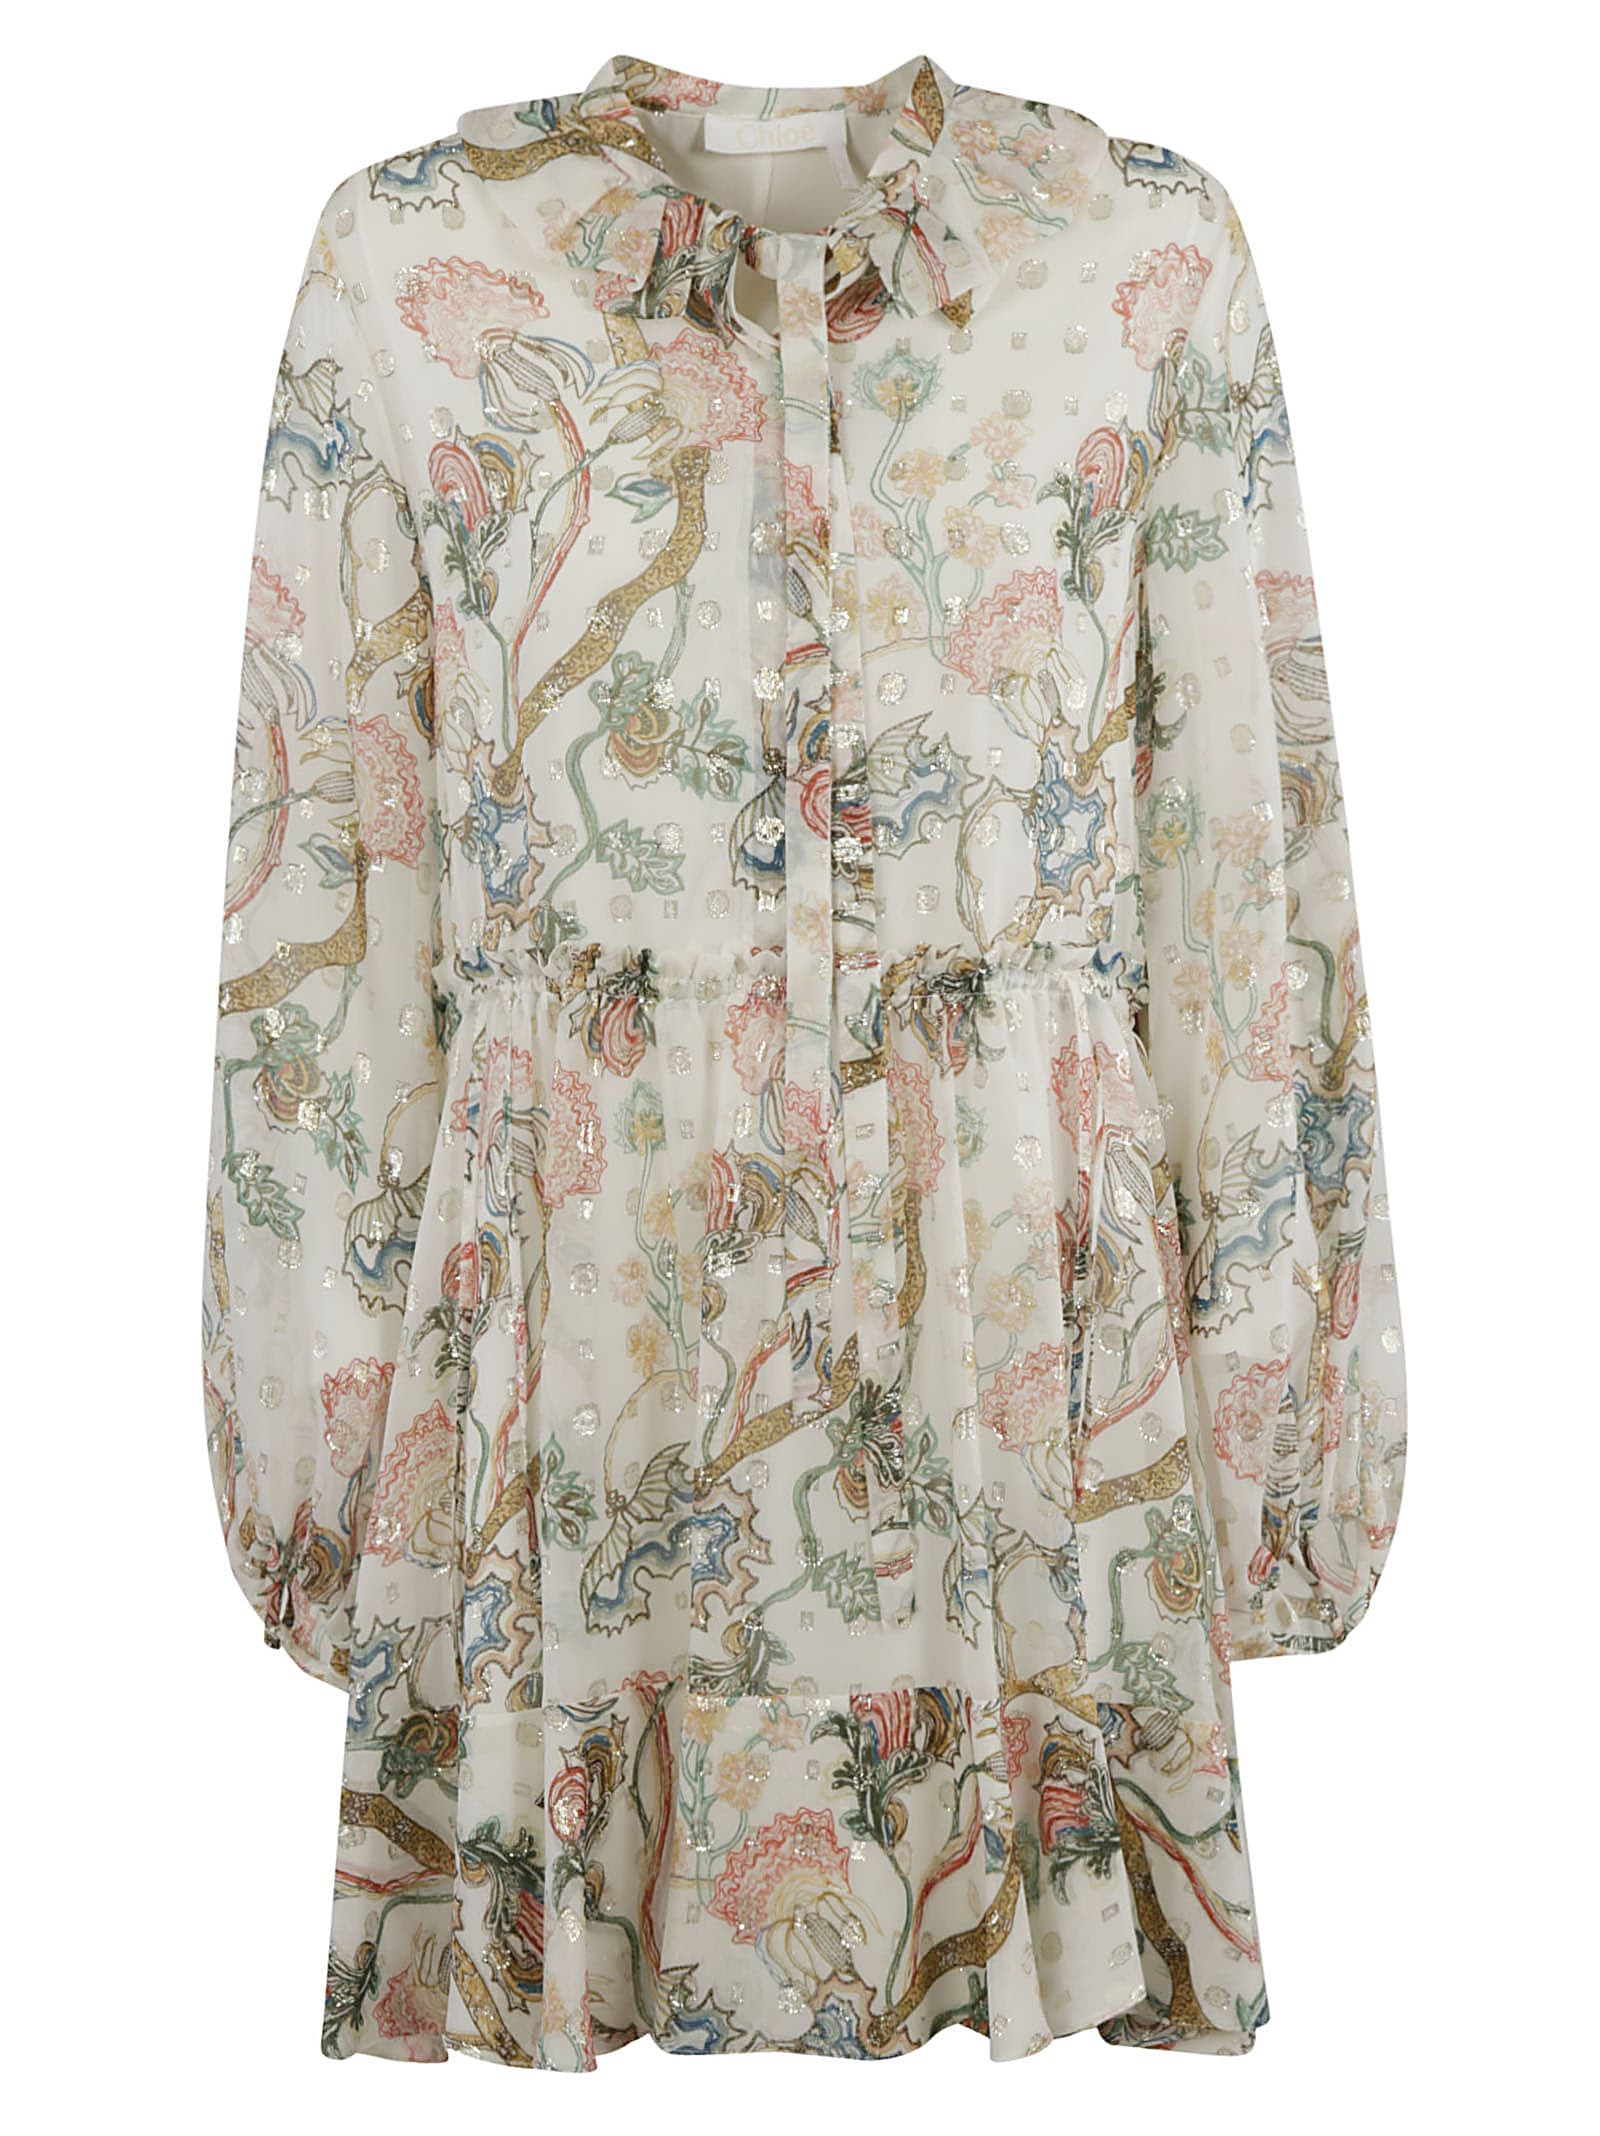 Buy Chloé Floral Print Crystal-embellished Dress online, shop Chloé with free shipping